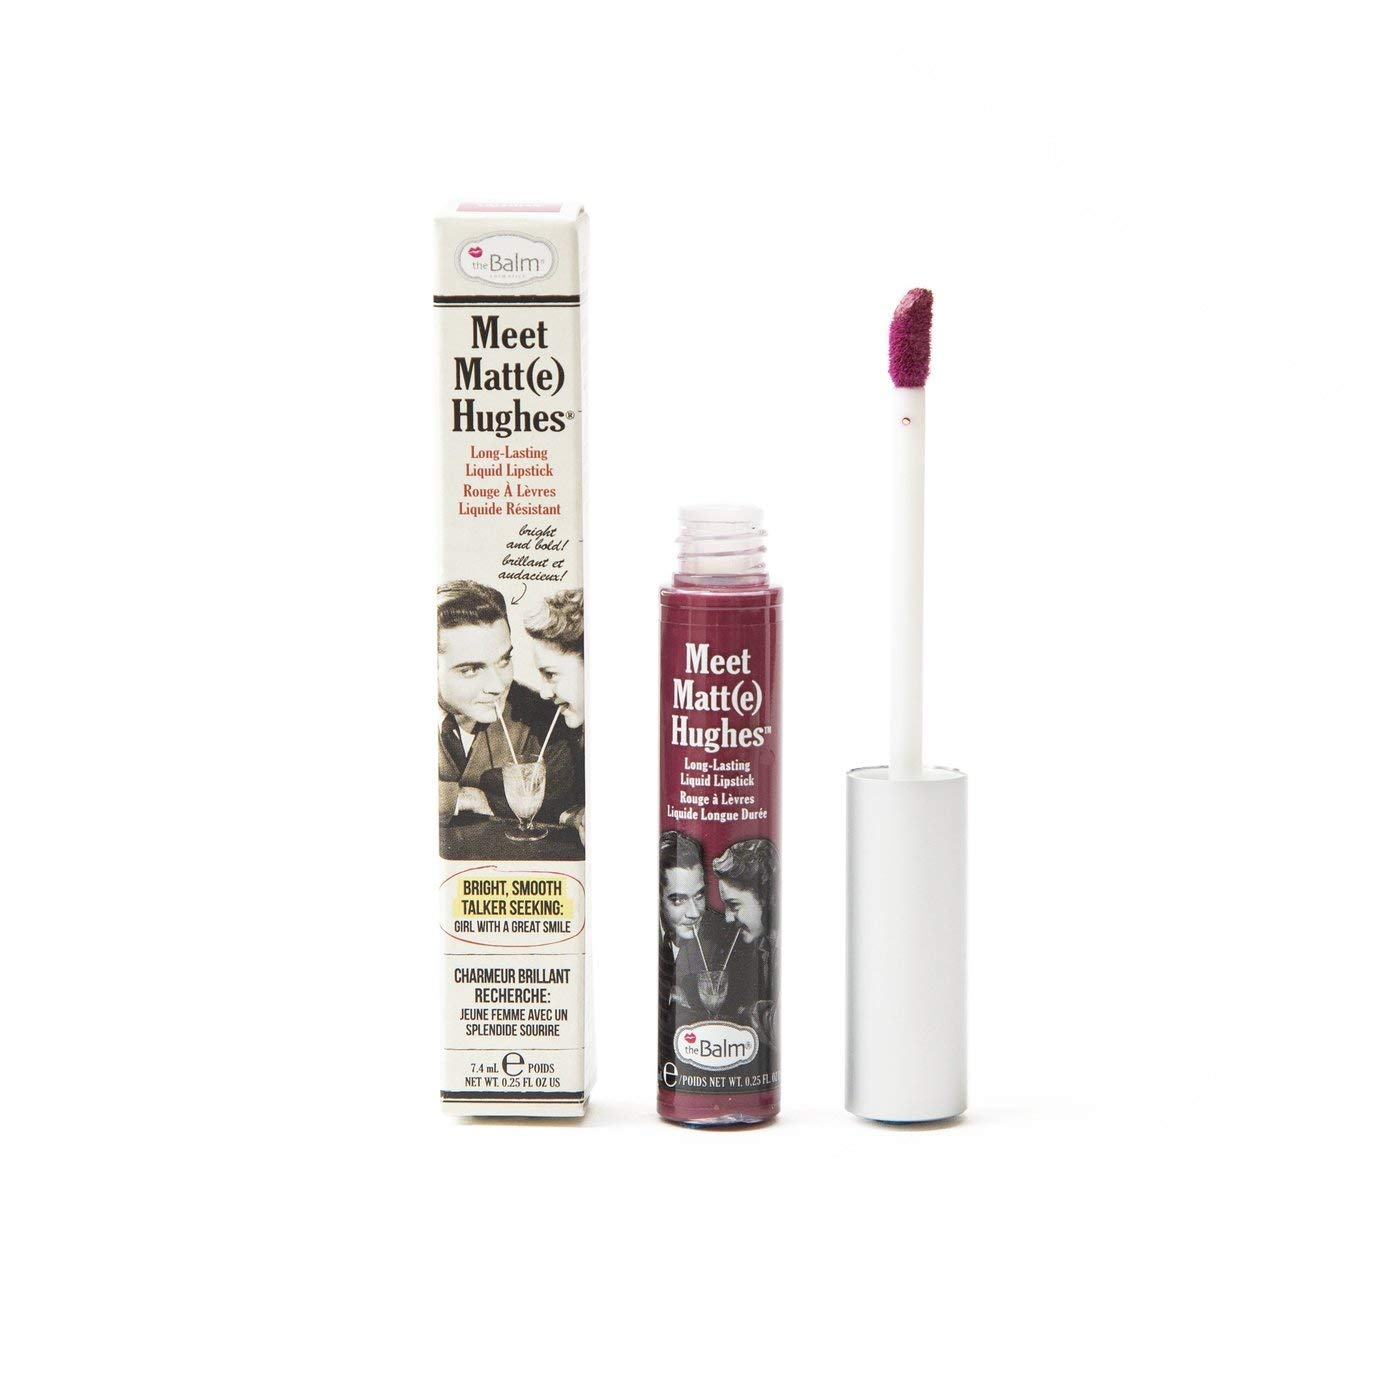 theBalm Meet Matte Hughes Long Lasting Liquid Lipstick - Faithful